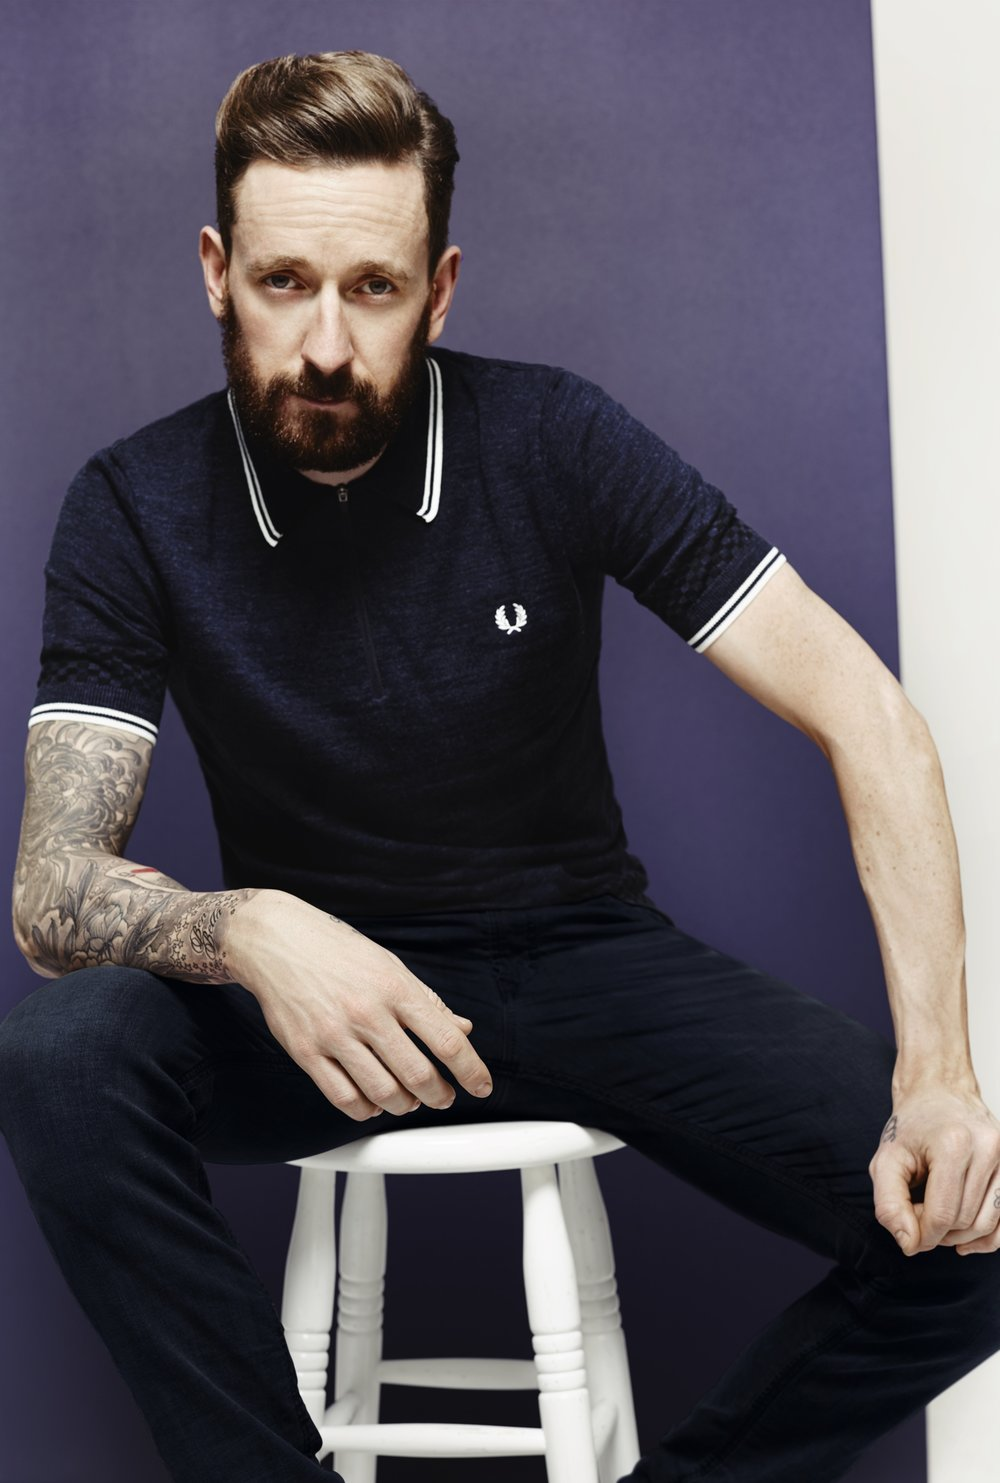 fred-perry-bradley-wiggins-8.jpg